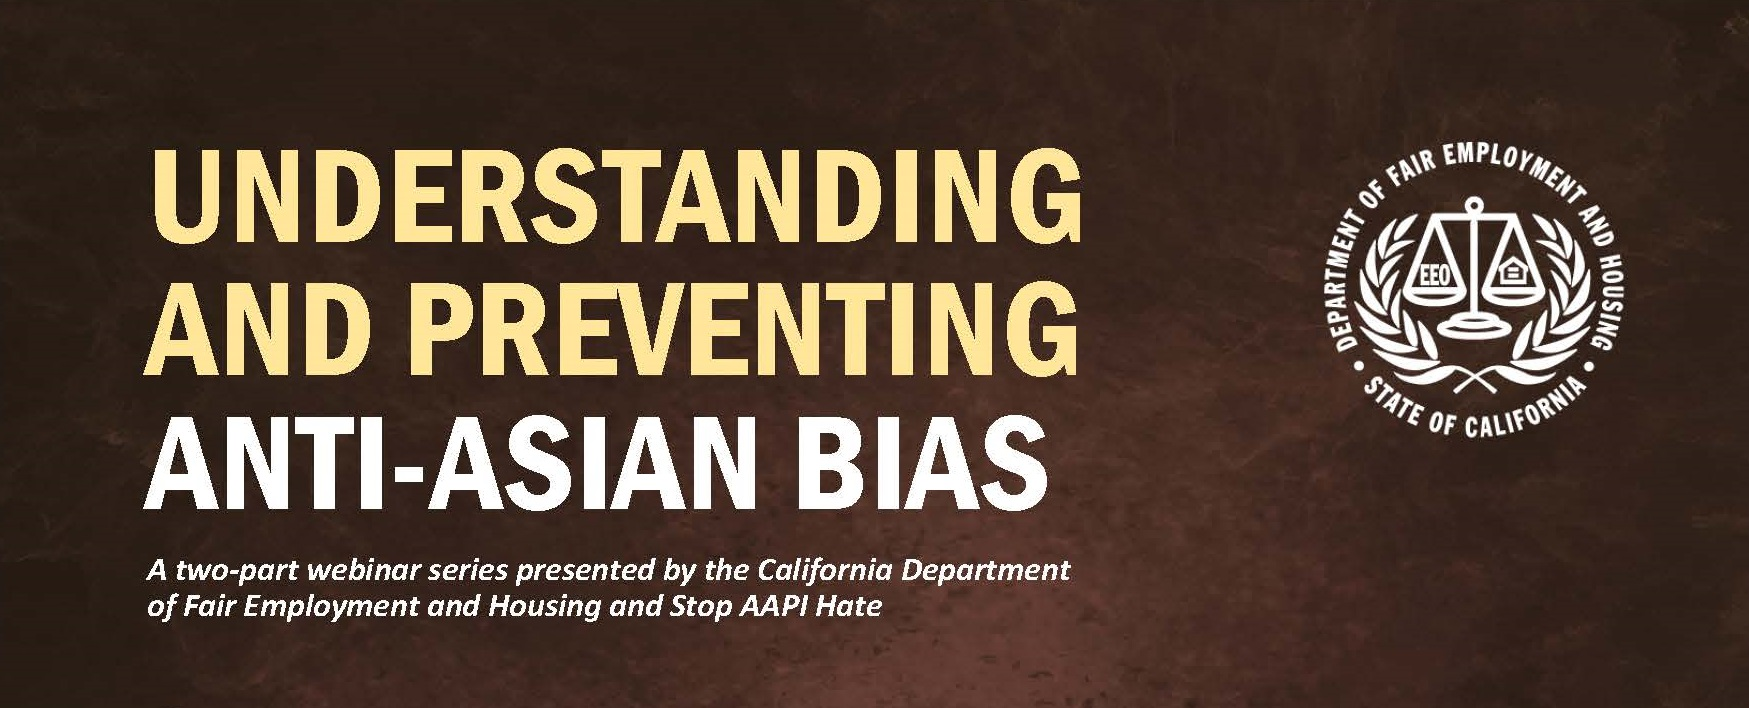 Understanding and Preventing Anti-Asian Bias: